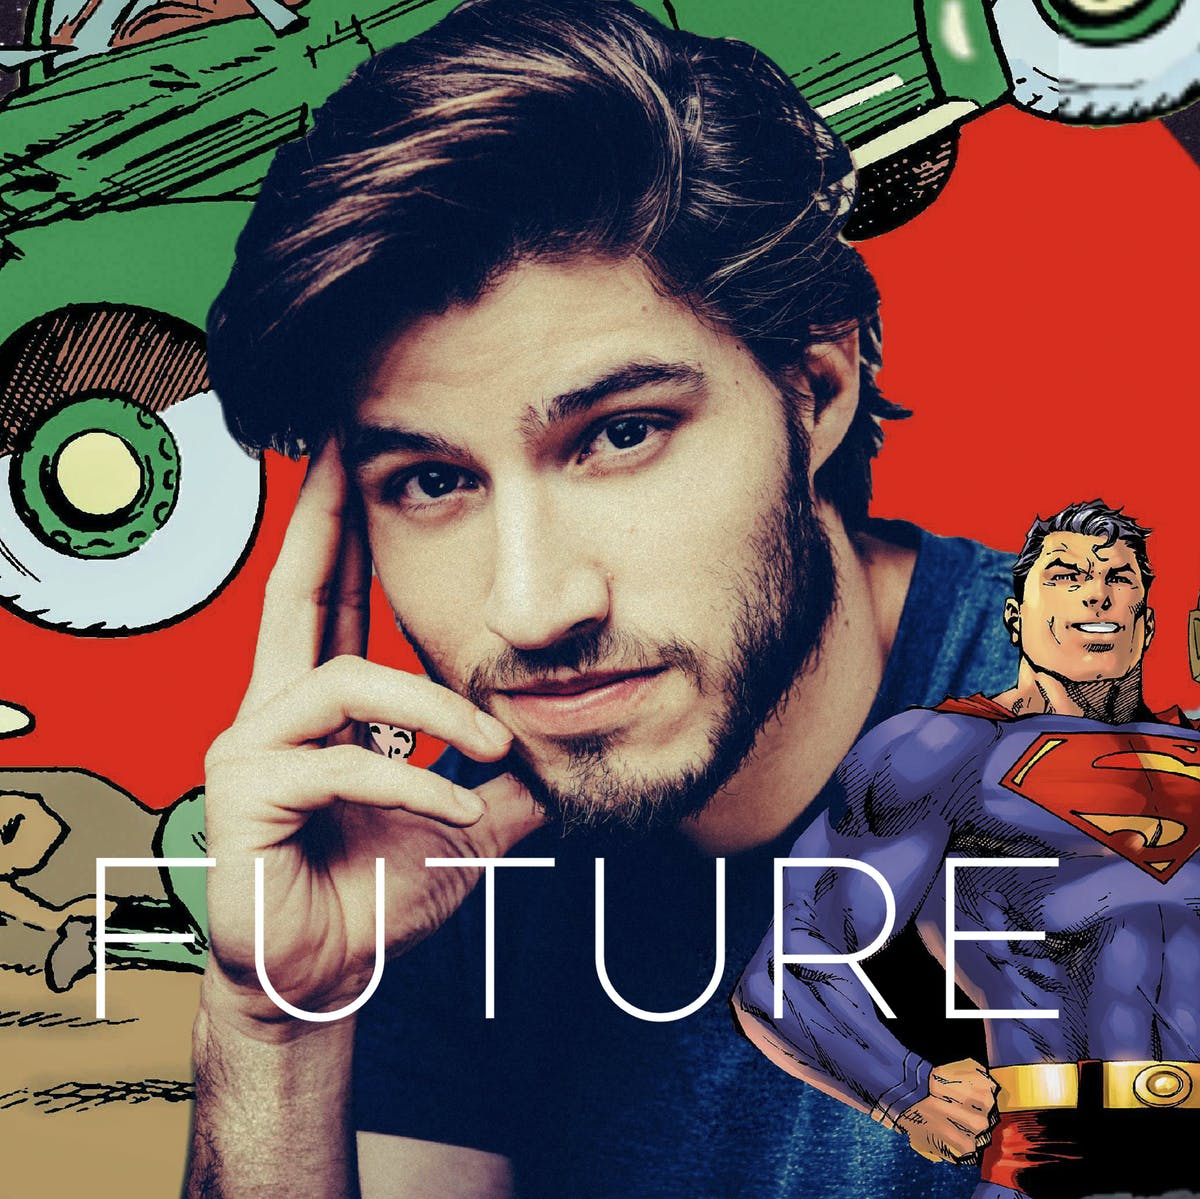 Cameron Cuffe: Superman Is Better Than Batman for One Hopeful Reason